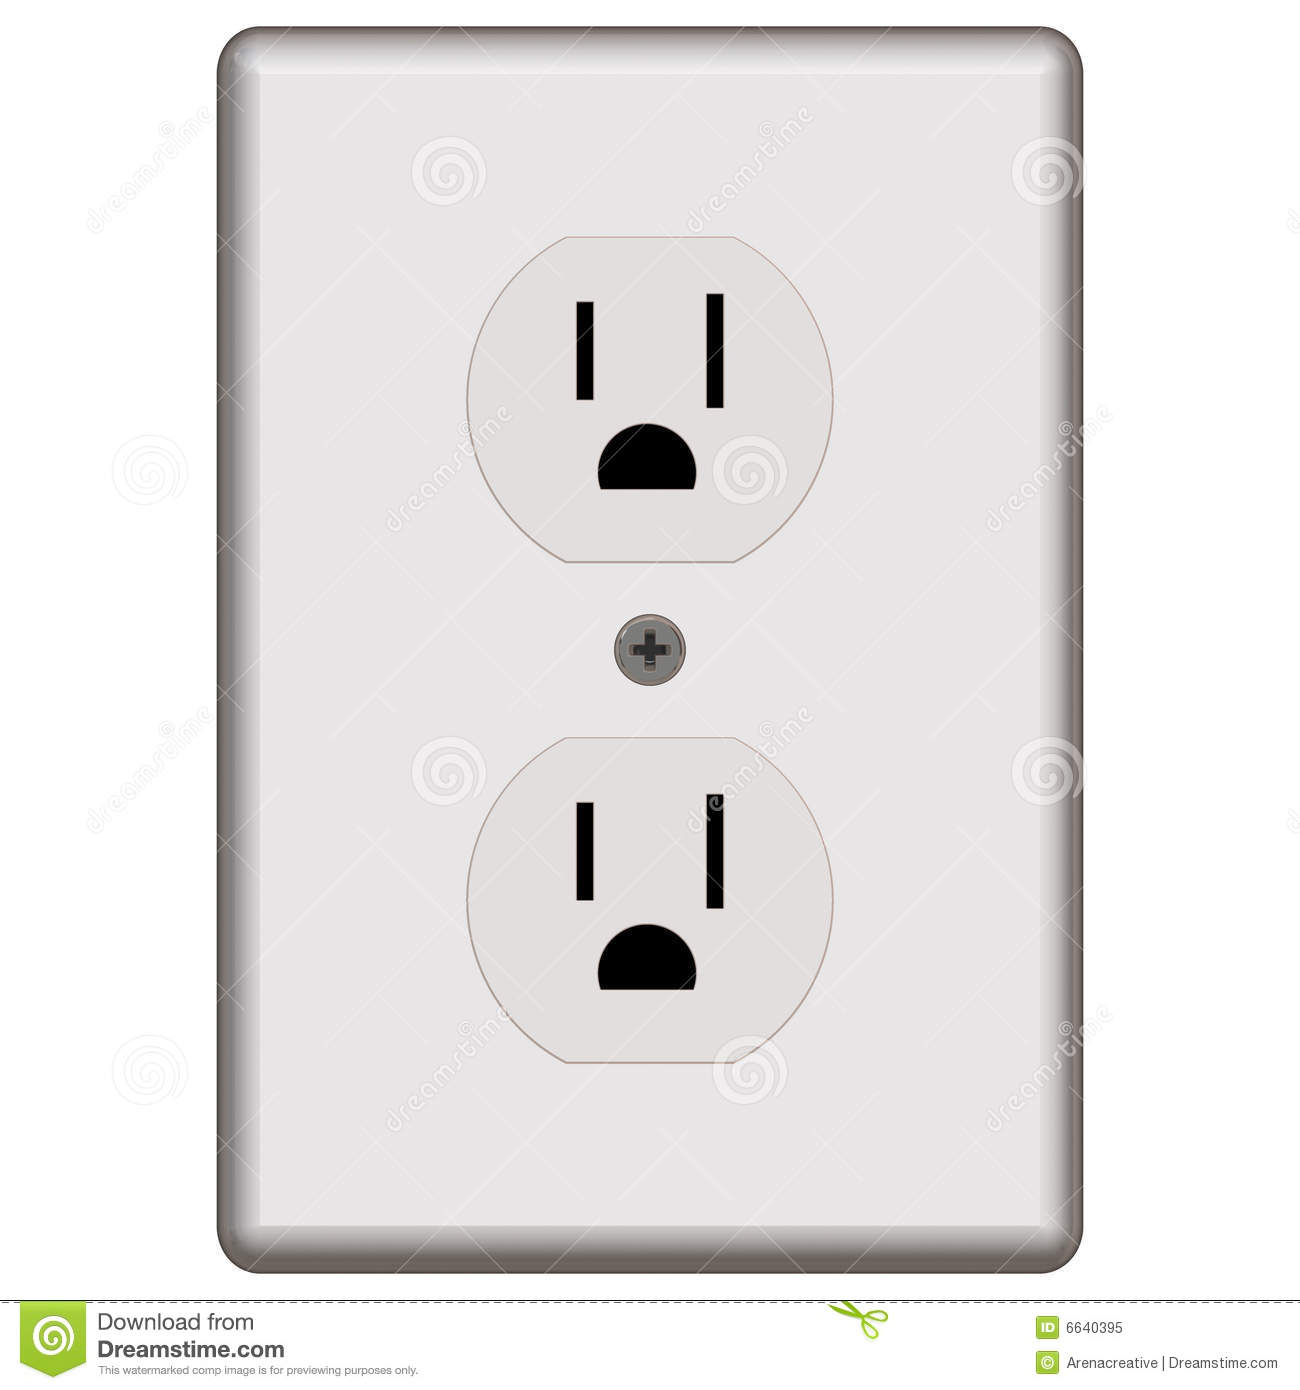 Standard electrical outlet stock illustration illustration of standard electrical outlet biocorpaavc Choice Image